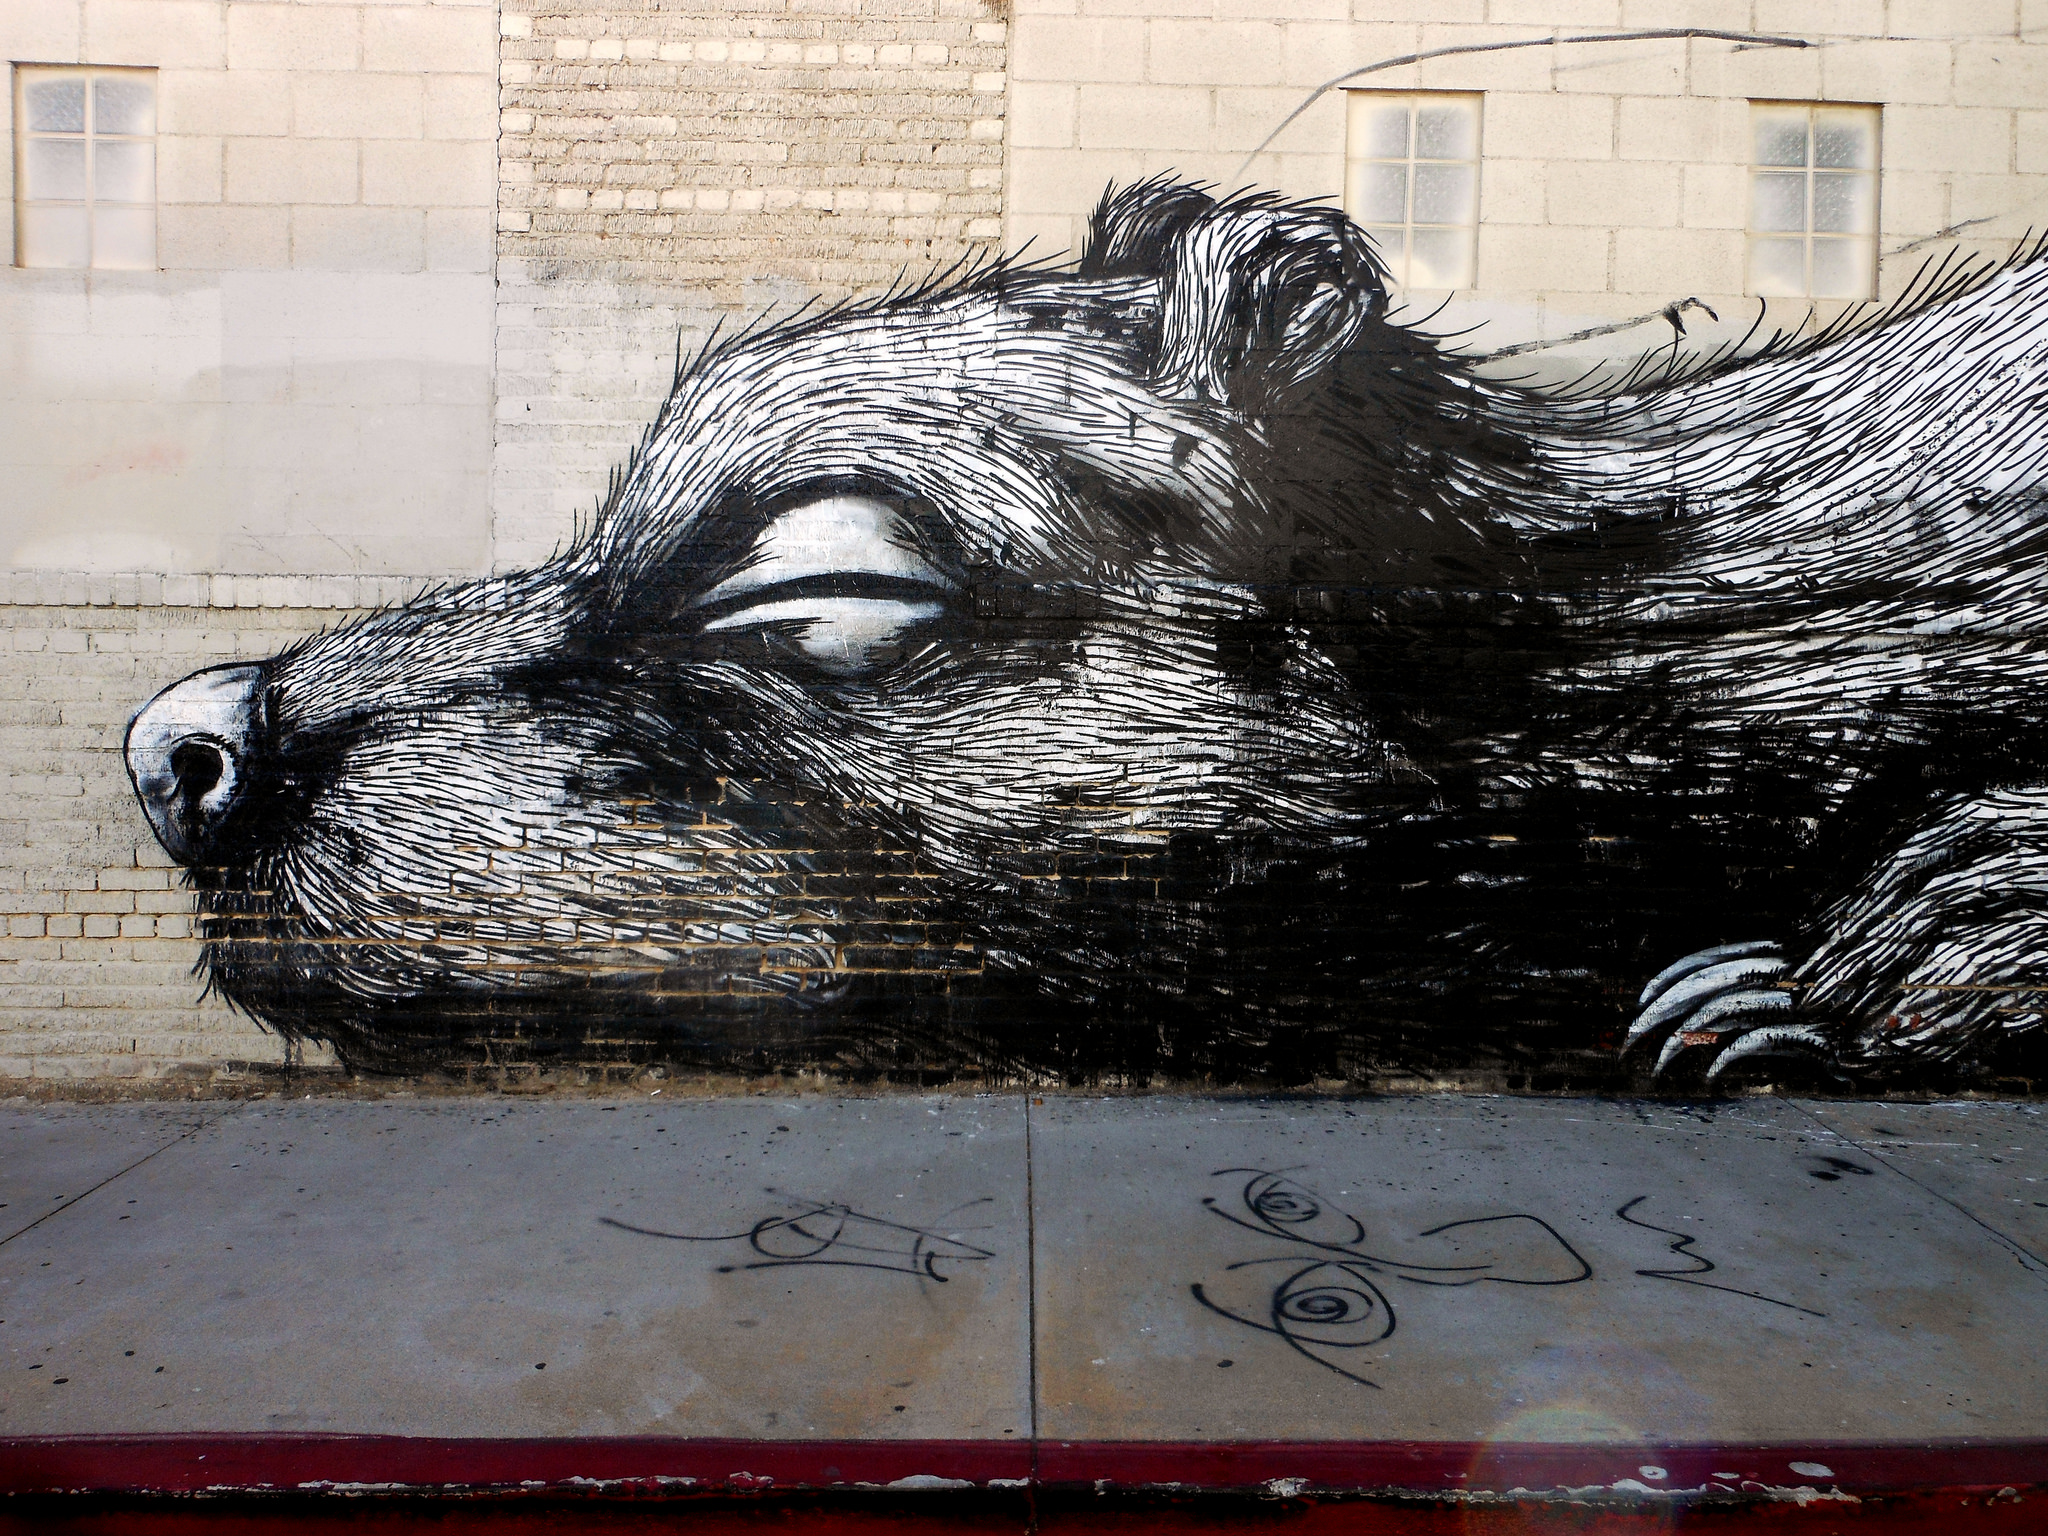 Hibernation  – detail from ROA's peiceby Doran  is licensed underCC BY 2.0